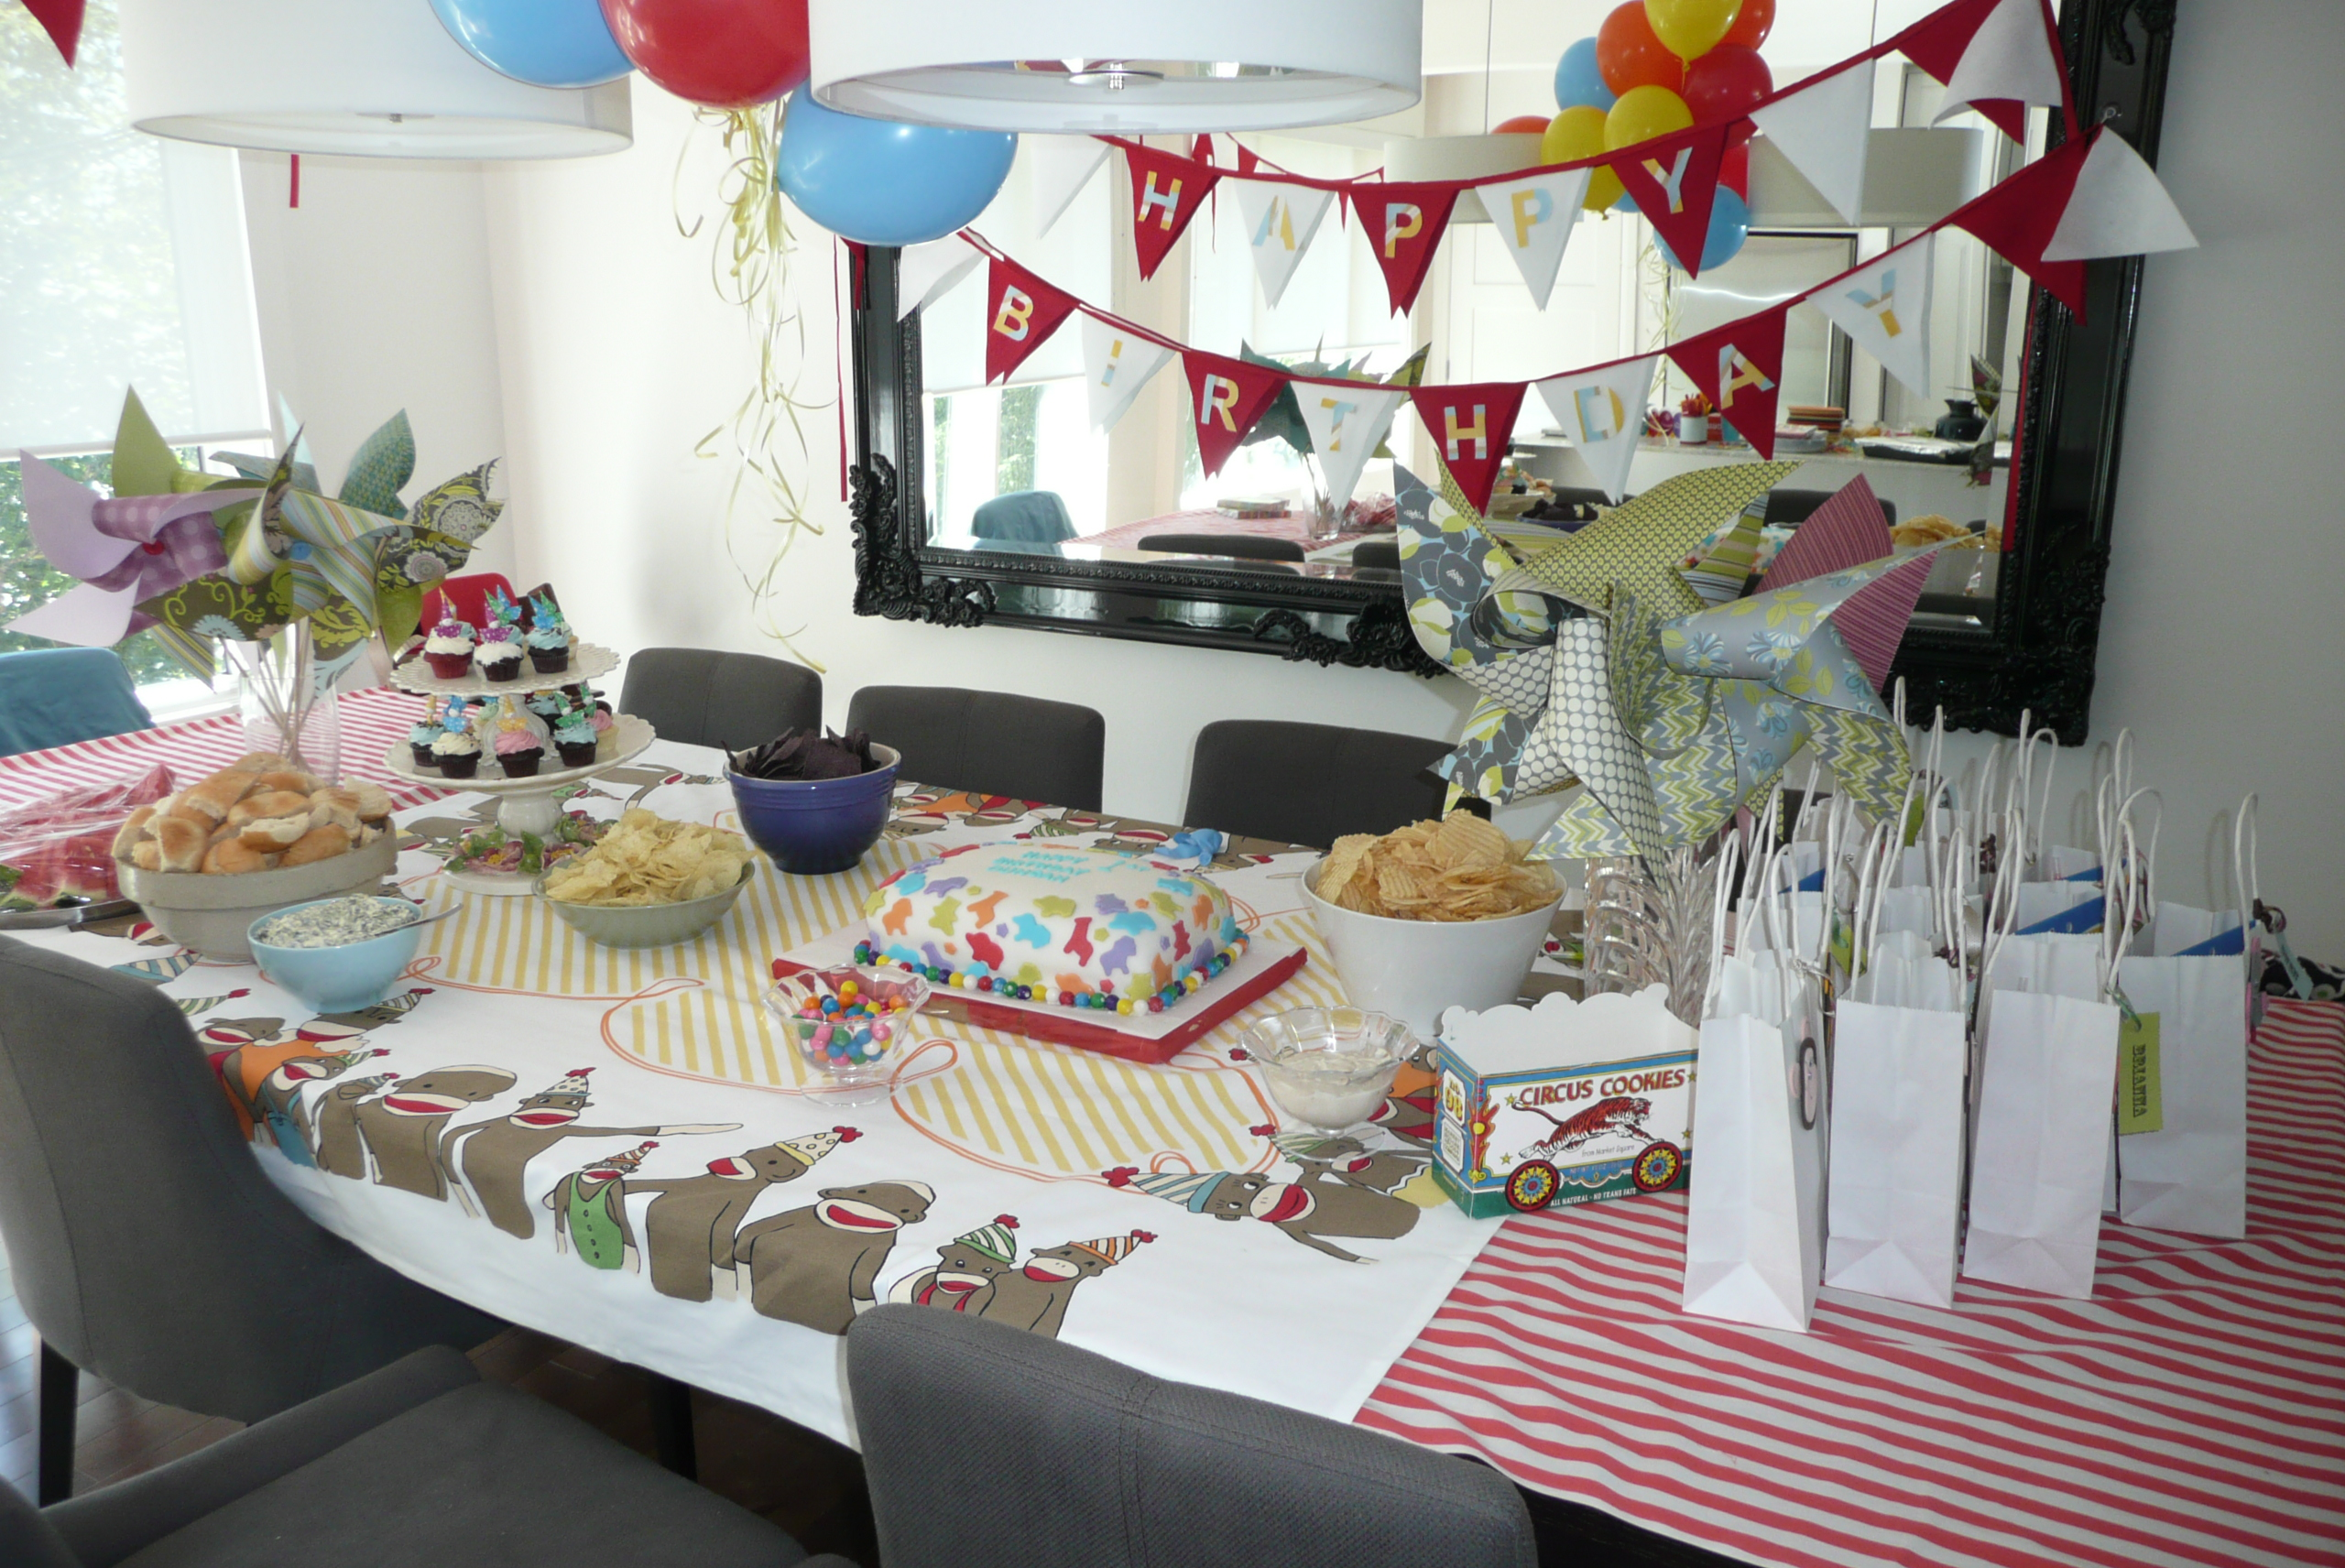 Birthday Party Ideas for a 2 Year Old Boy Mothering Forums